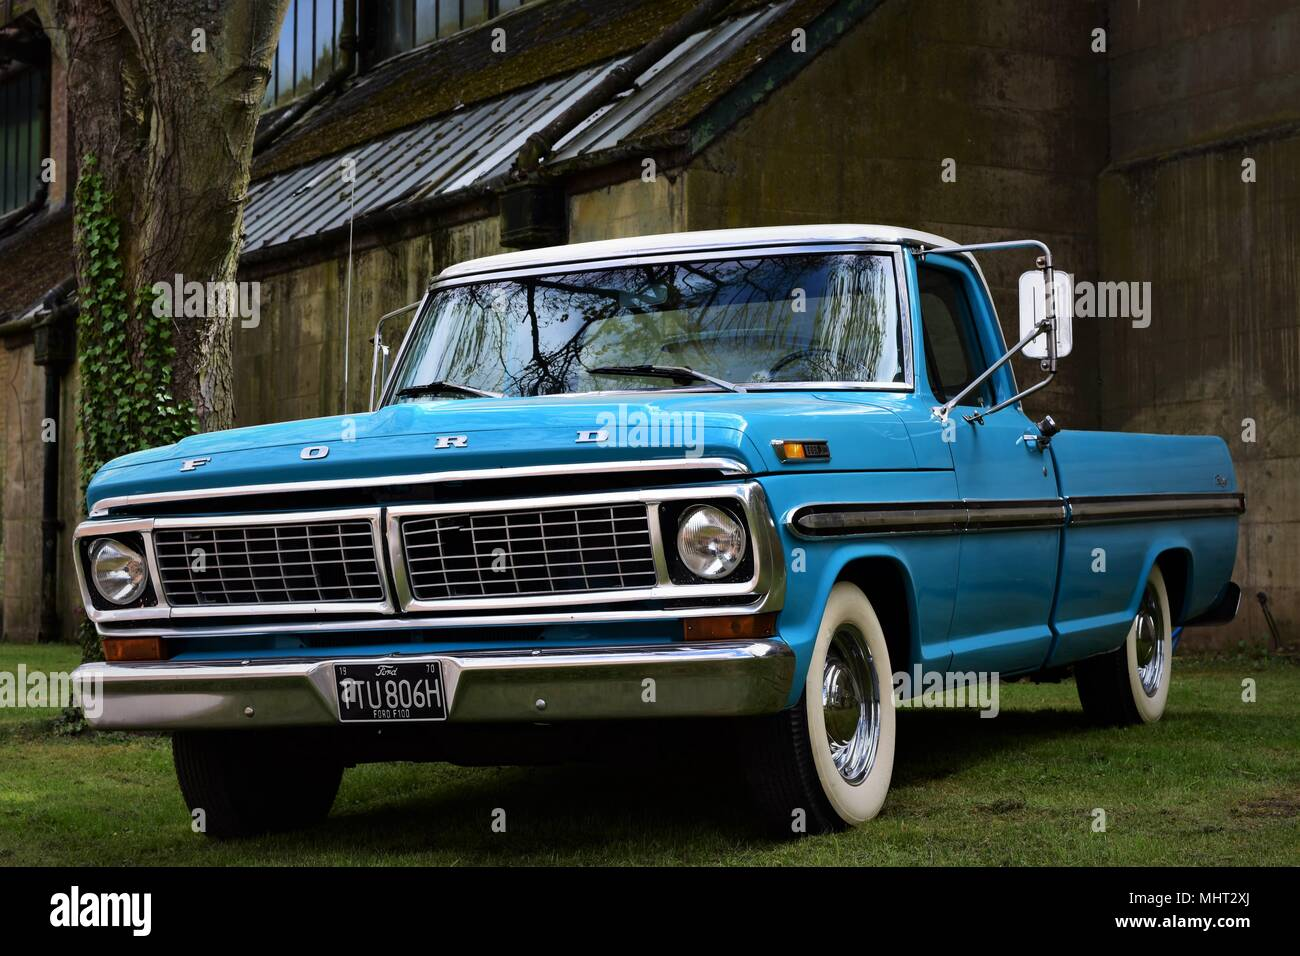 Ford F100 Stock Photos Images Alamy 1951 1953 F1 Pickup Truck Blue 1969 On Display At The Sunday Scramble Bicester Heritage In